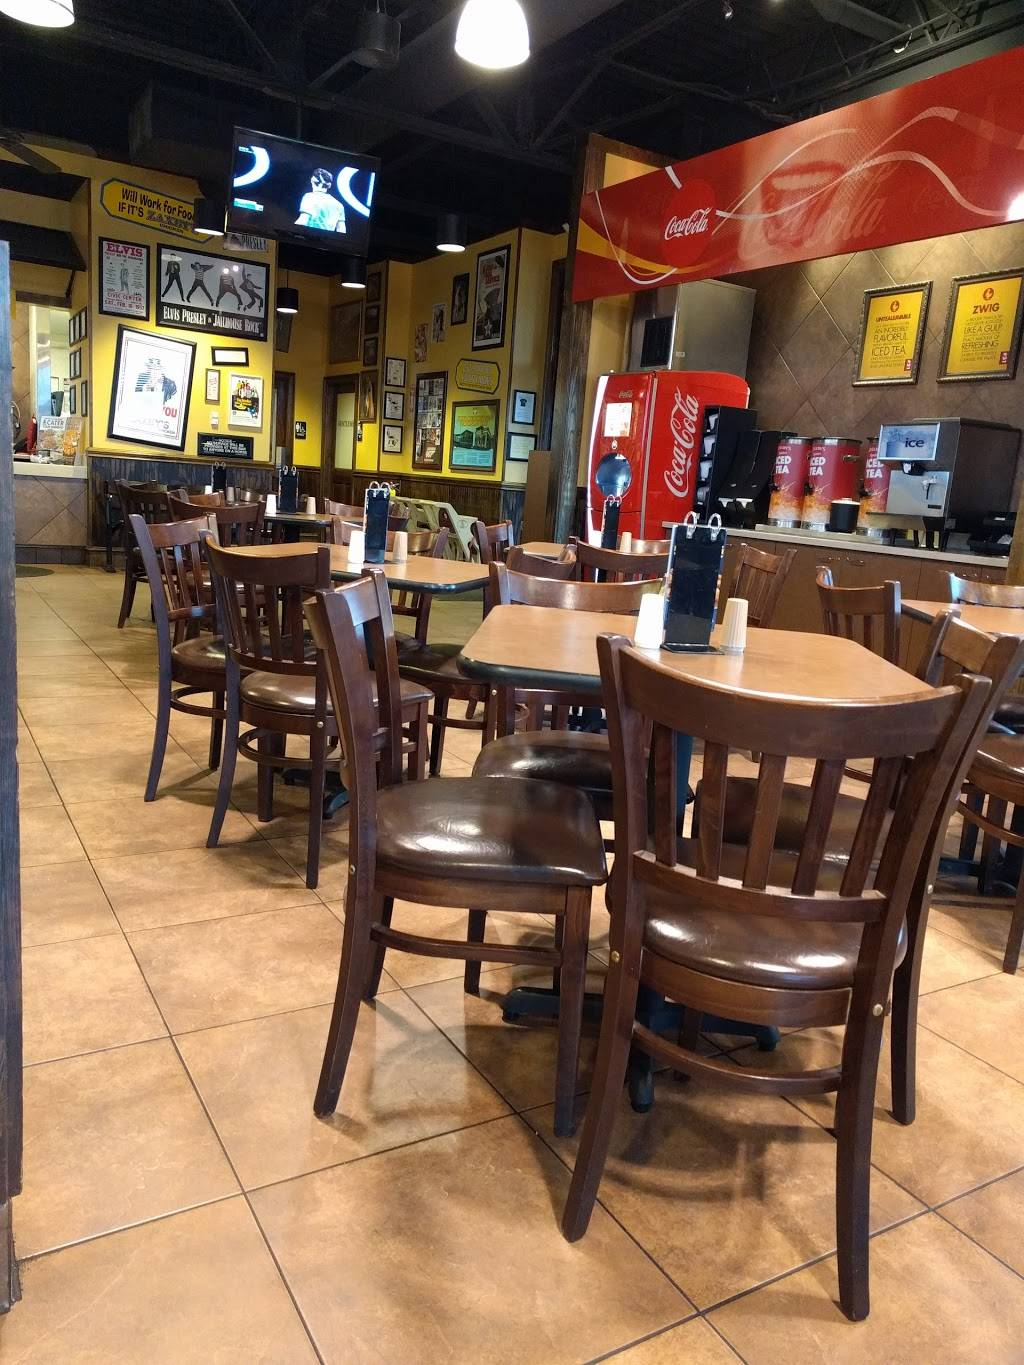 Zaxbys Chicken Fingers & Buffalo Wings - restaurant  | Photo 3 of 10 | Address: 2870 Technology Ave, New Albany, IN 47150, USA | Phone: (812) 725-7484